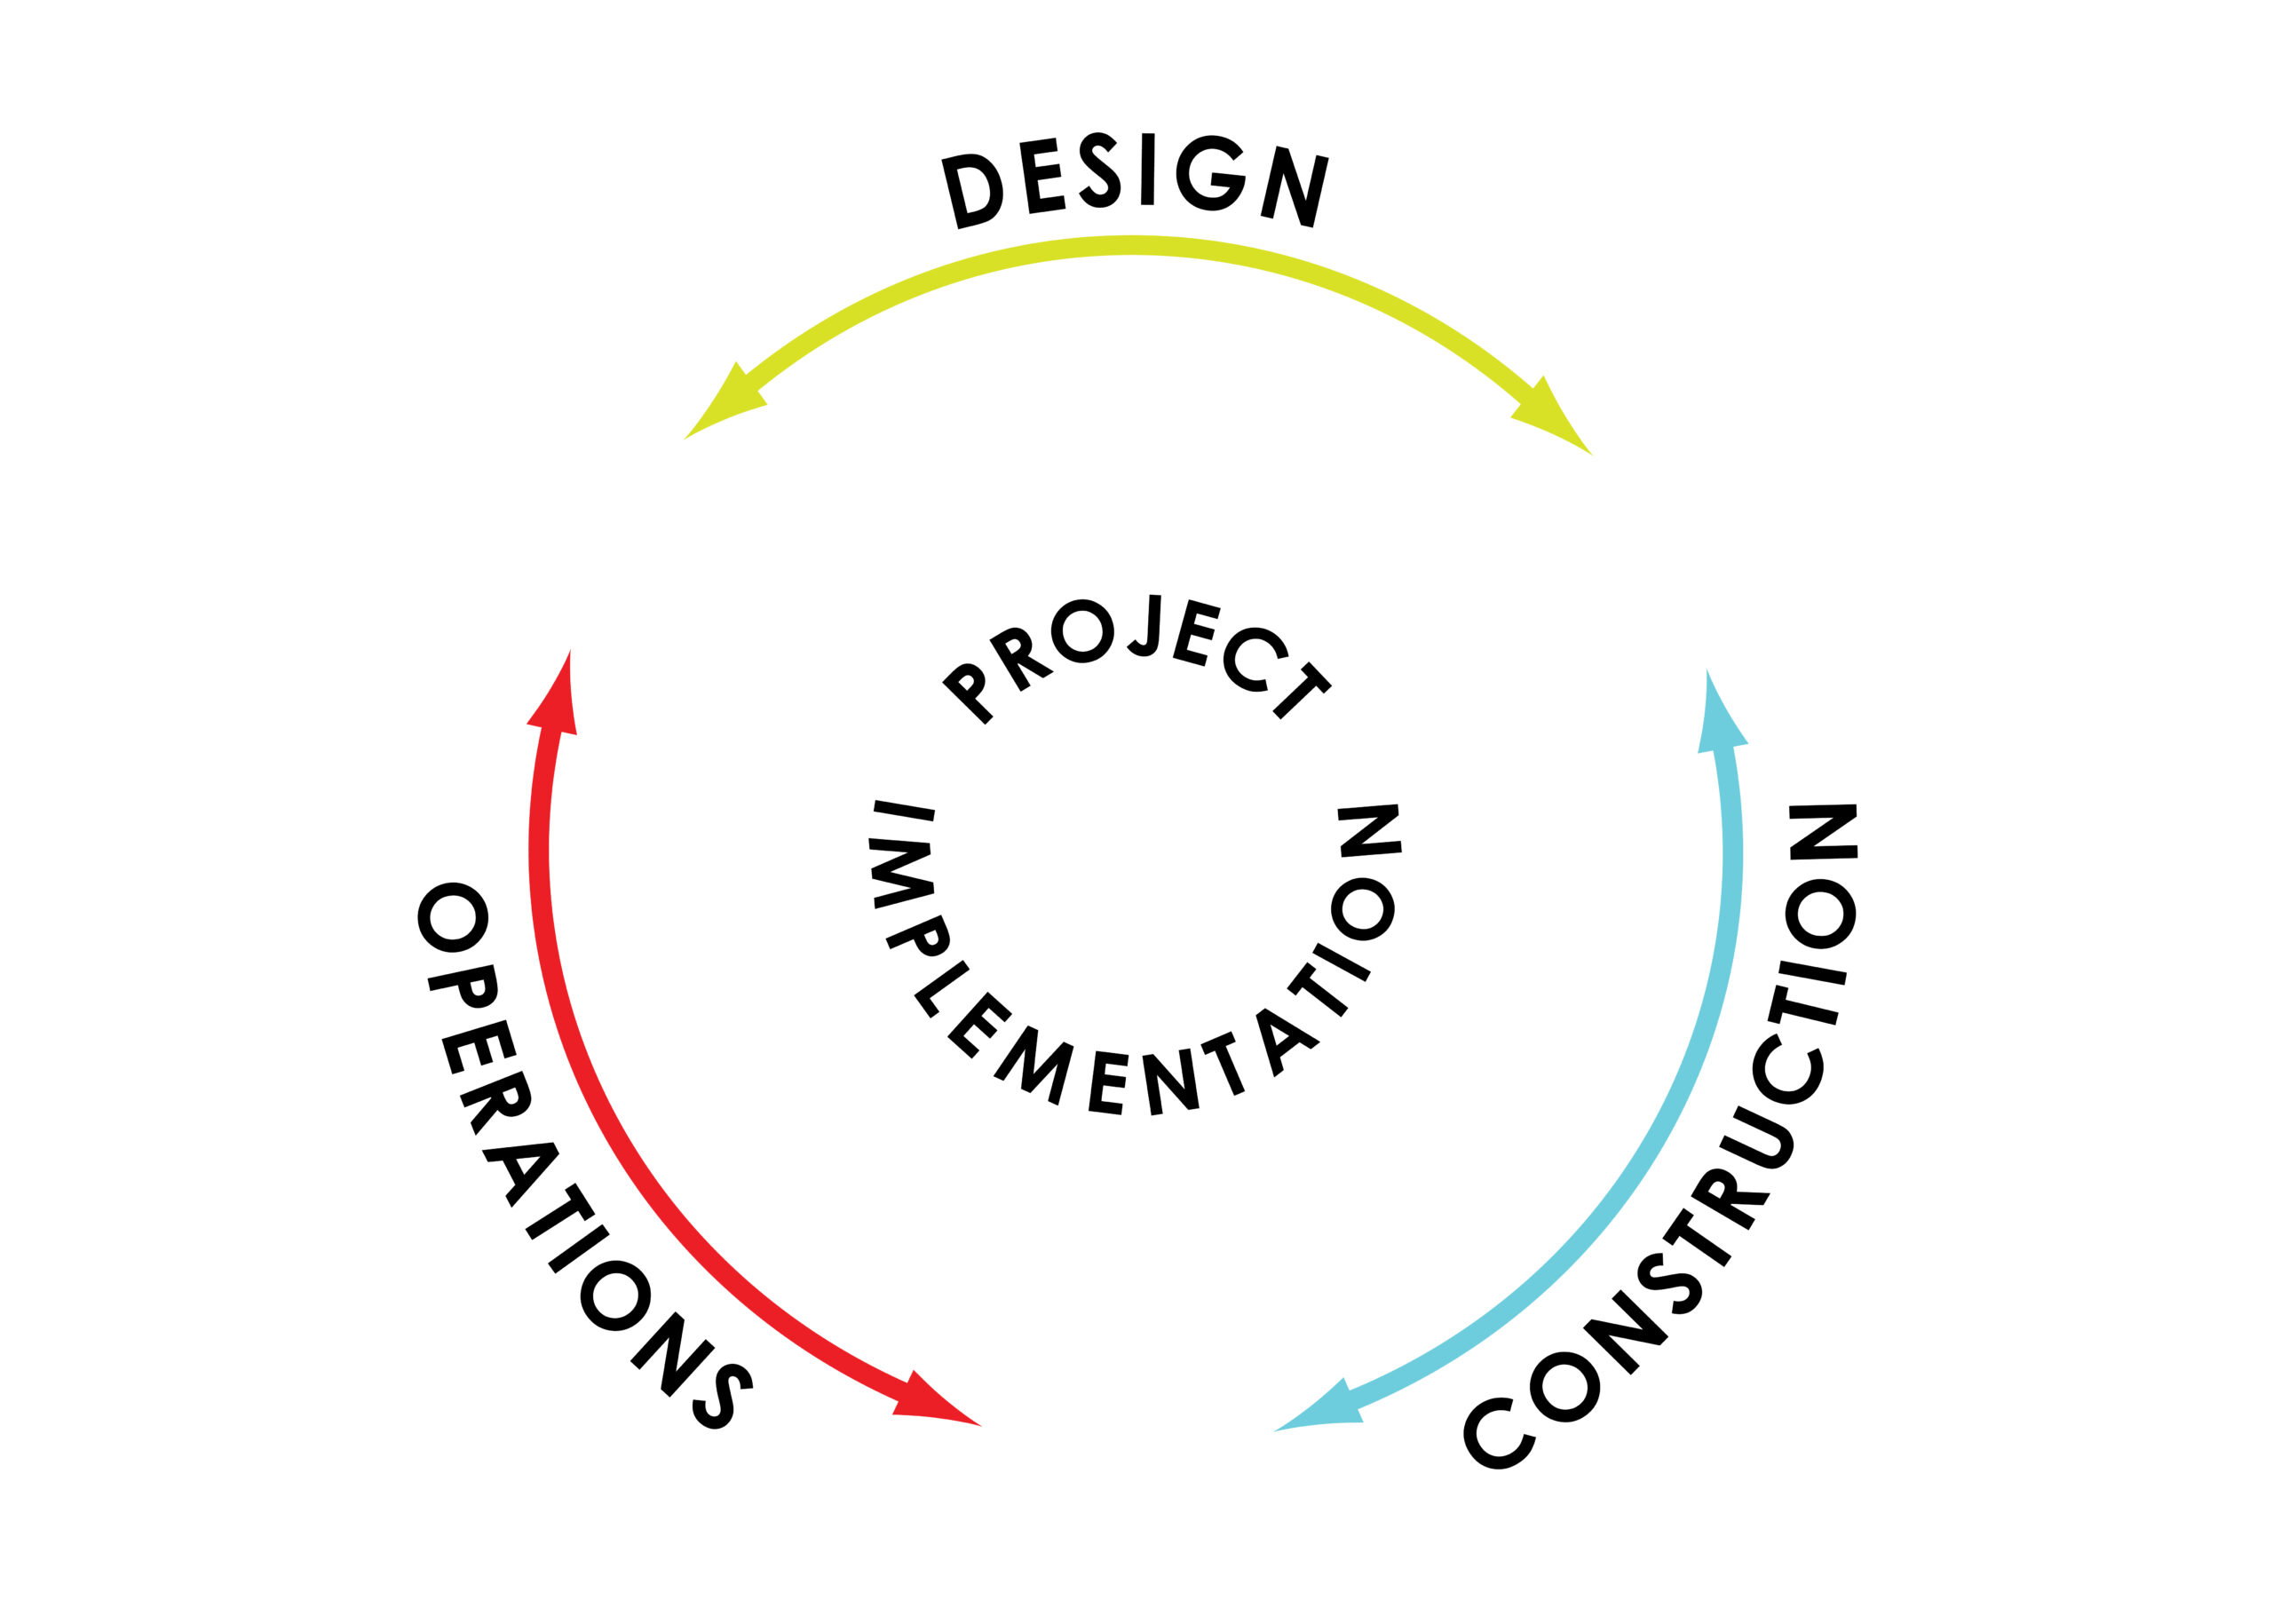 A diagram showing the interconnectedness of design, construction, and operations in project implementation. The words